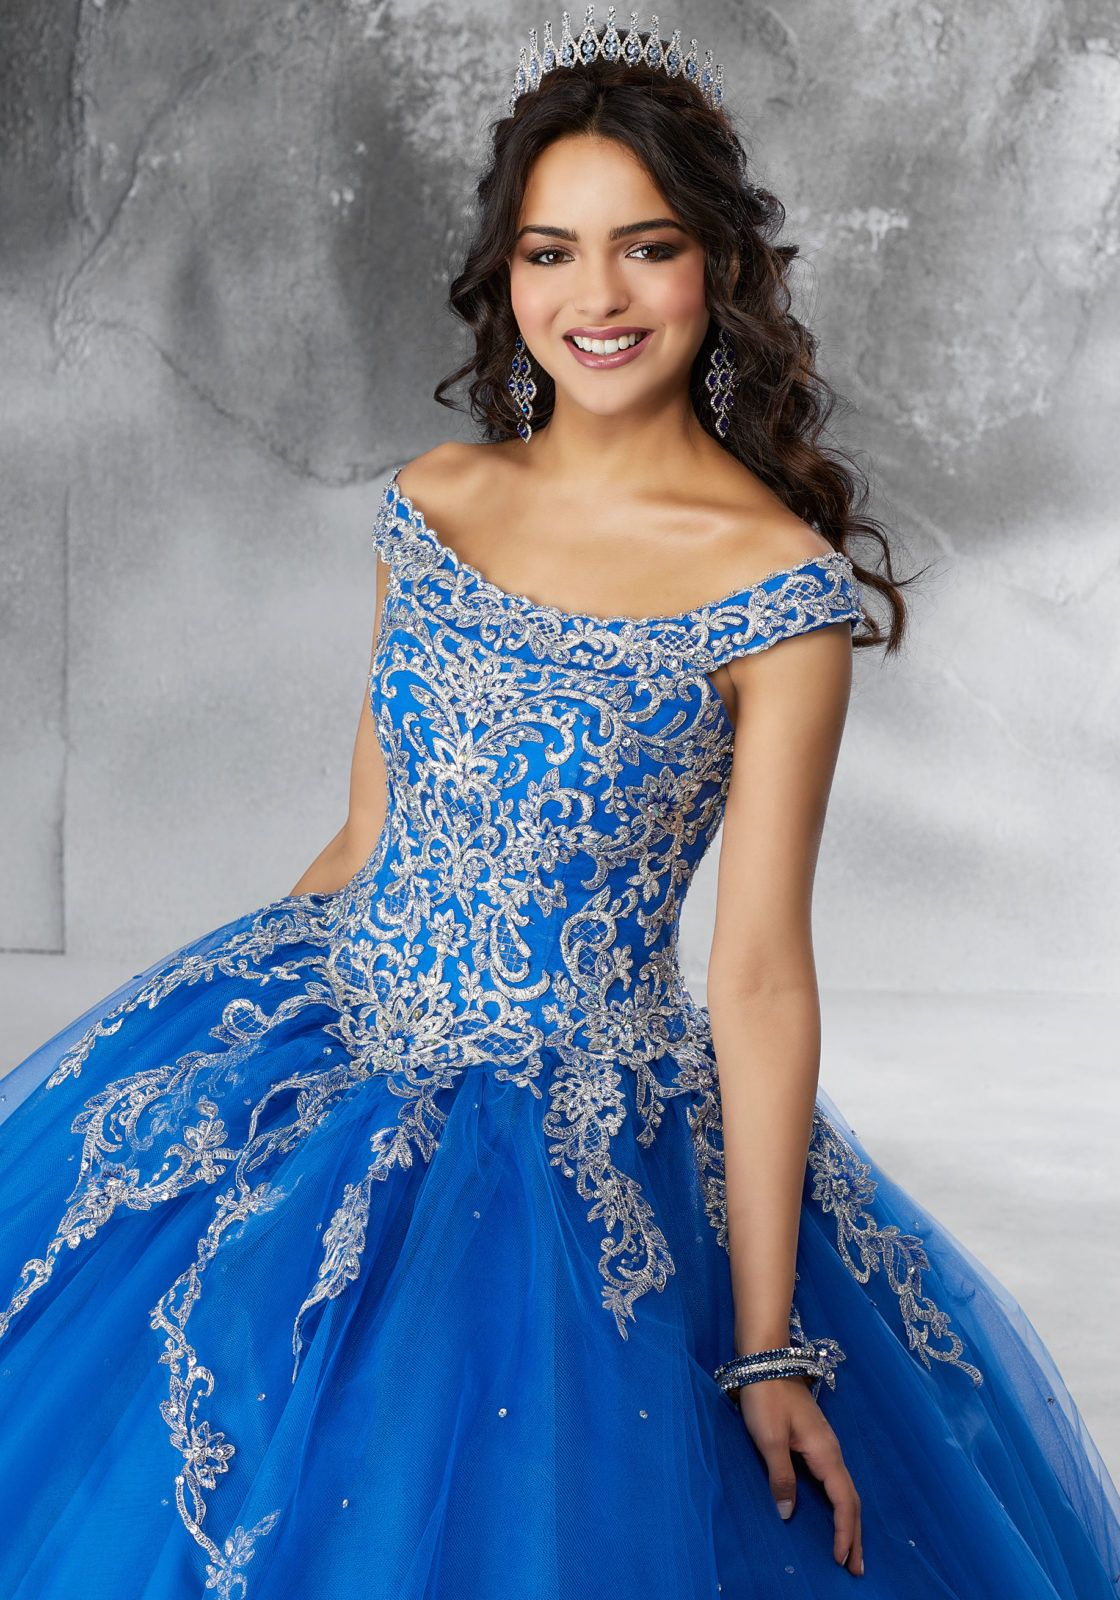 c92b76acff05 Beaded, Metallic Embroidered Appliqués on a Princess Tulle Ballgown ...